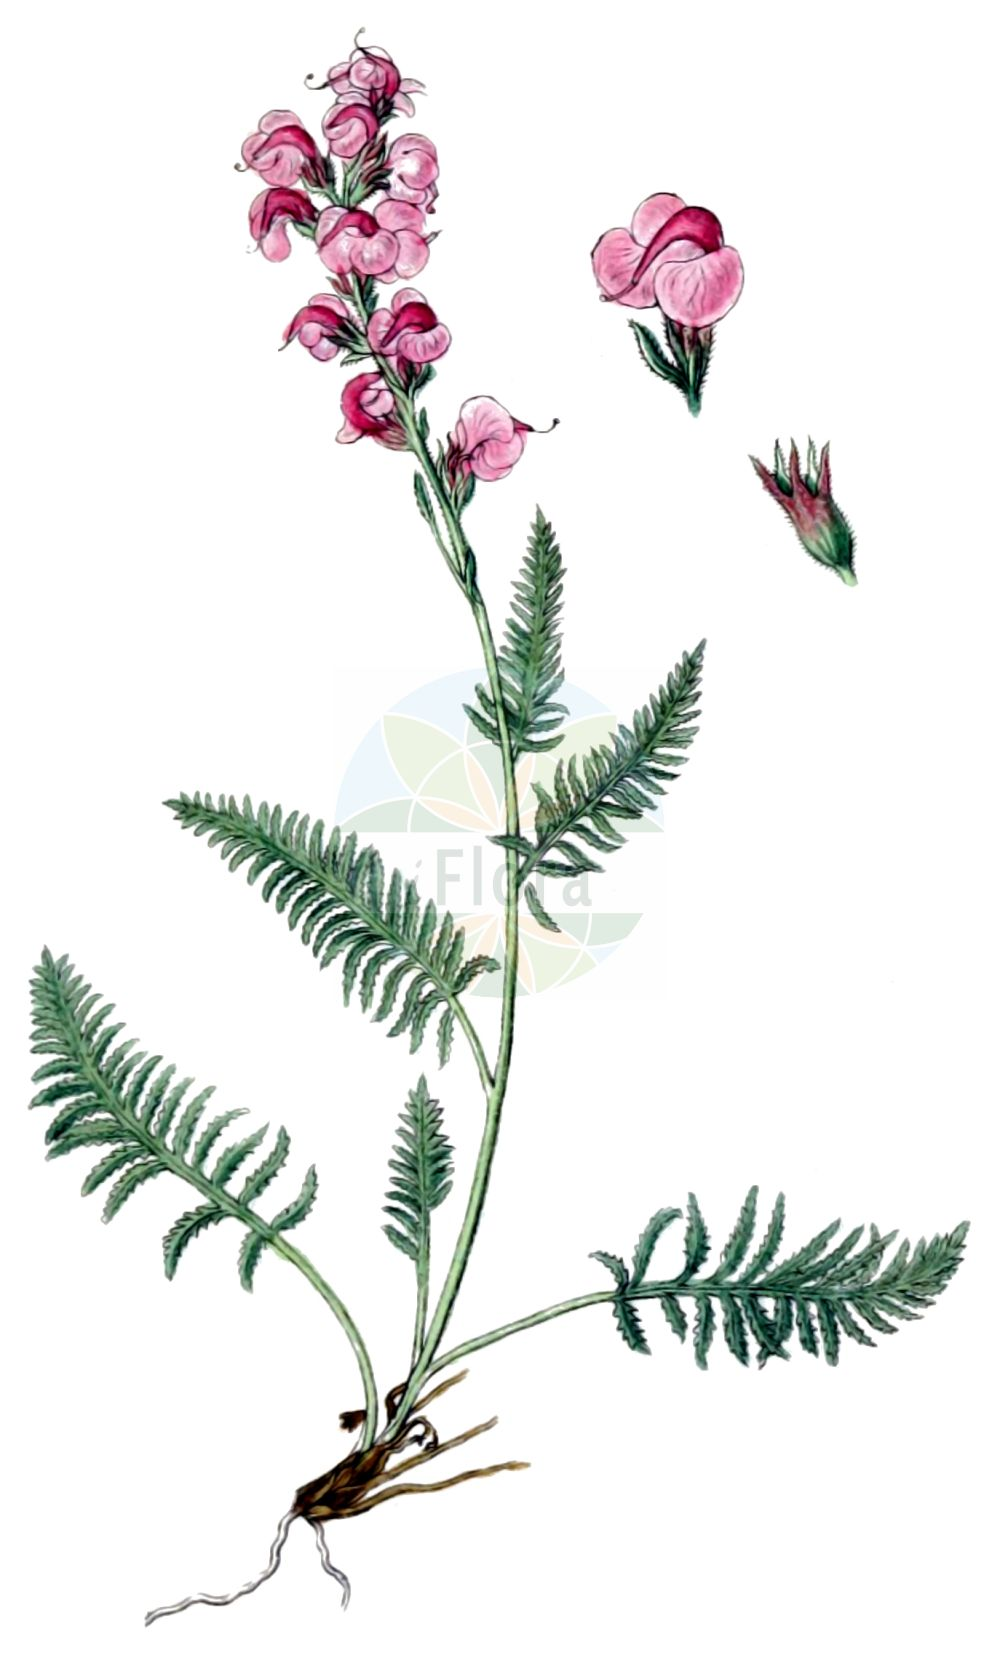 Historische Abbildung von Pedicularis rostratospicata (Fleischrotes Laeusekraut - Flesh-pink Lousewort). Das Bild zeigt Blatt, Bluete, Frucht und Same. ---- Historical Drawing of Pedicularis rostratospicata (Fleischrotes Laeusekraut - Flesh-pink Lousewort).The image is showing leaf, flower, fruit and seed.(Pedicularis rostratospicata,Fleischrotes Laeusekraut,Flesh-pink Lousewort,Pedicularis incarnata,Pedicularis rostratospicata,Fleischrotes Laeusekraut,Flesh-pink Lousewort,Pedicularis,Laeusekraut,Lousewort,Orobanchaceae,Sommerwurzgewaechse,Broomrape family,Blatt,Bluete,Frucht,Same,leaf,flower,fruit,seed,Sturm (1796f))